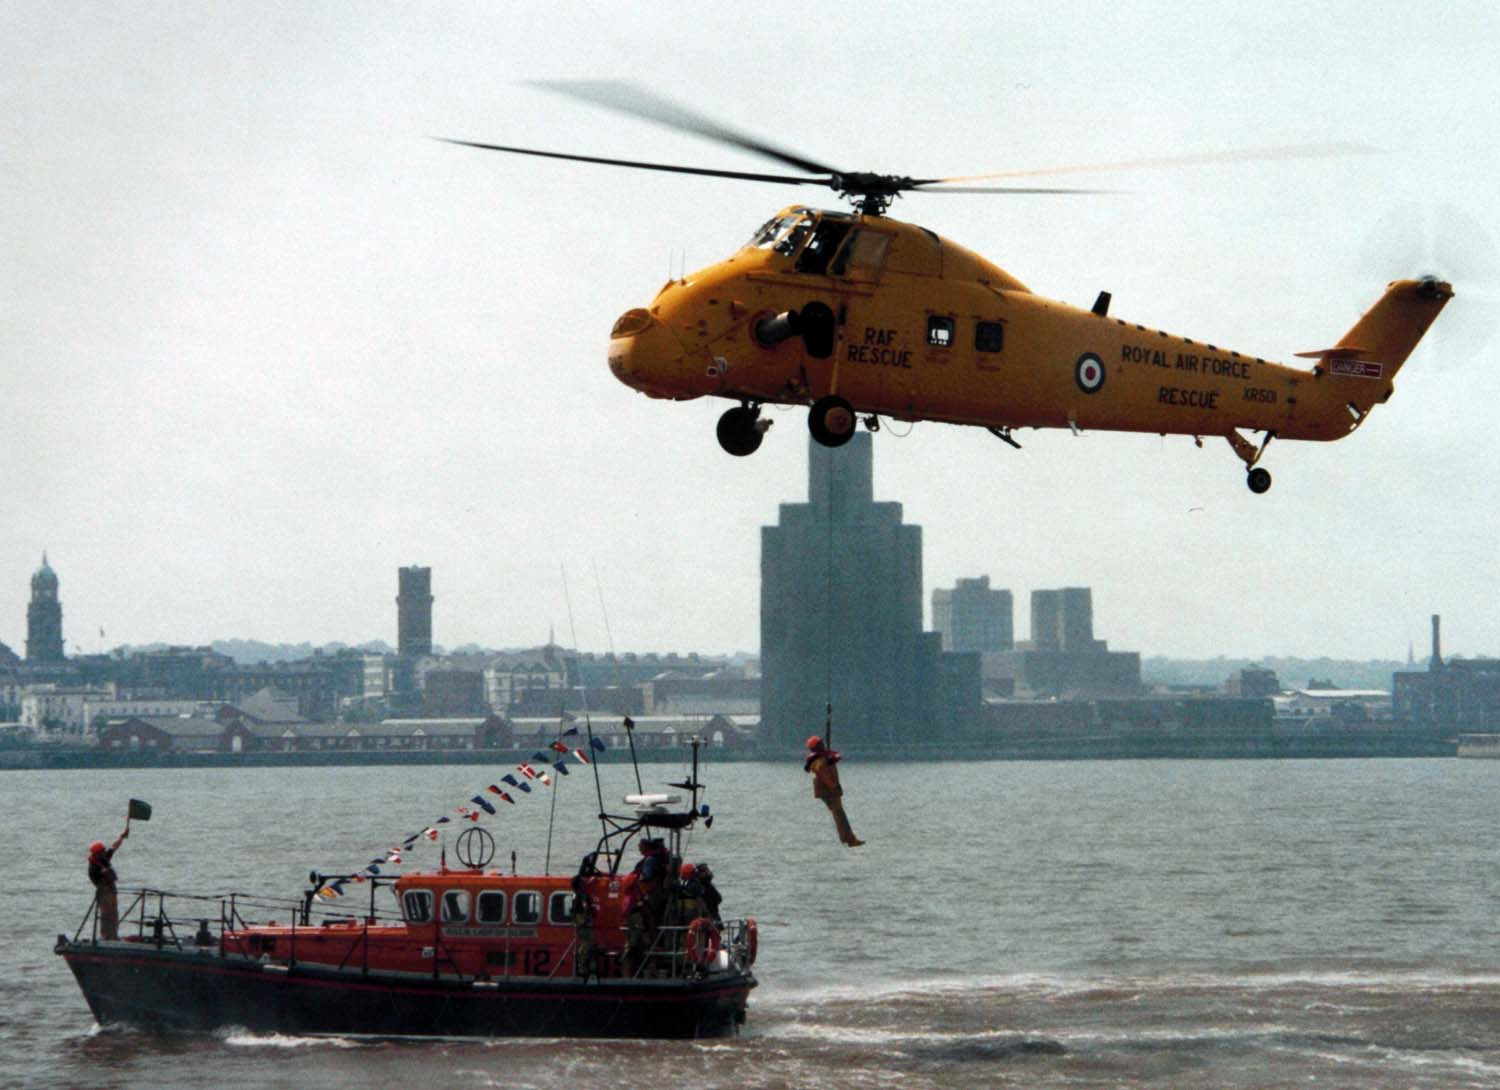 Air sea Rescue,Mersey River,Liverpool RNLI,air,sea,rescue,mersey,river,liverpool,birkenhead,wirral,june,festival,helecopter,helicoptor,this photo rocks,city,town,merseyside,hotpix!